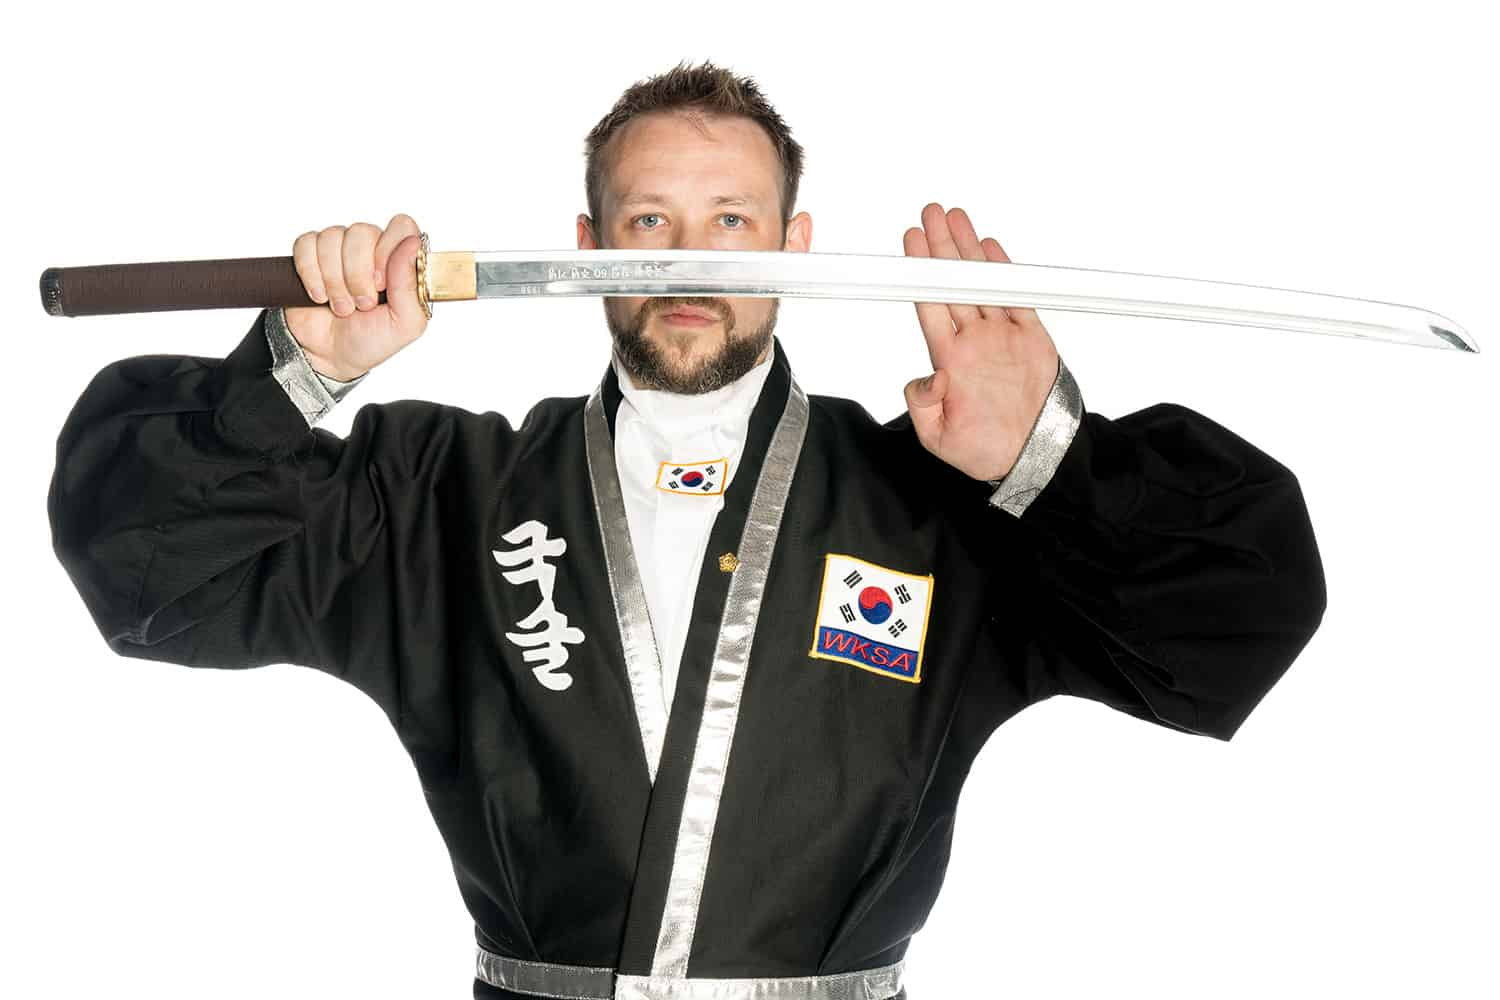 Scott McManus with Kuk Sool Won Weapon